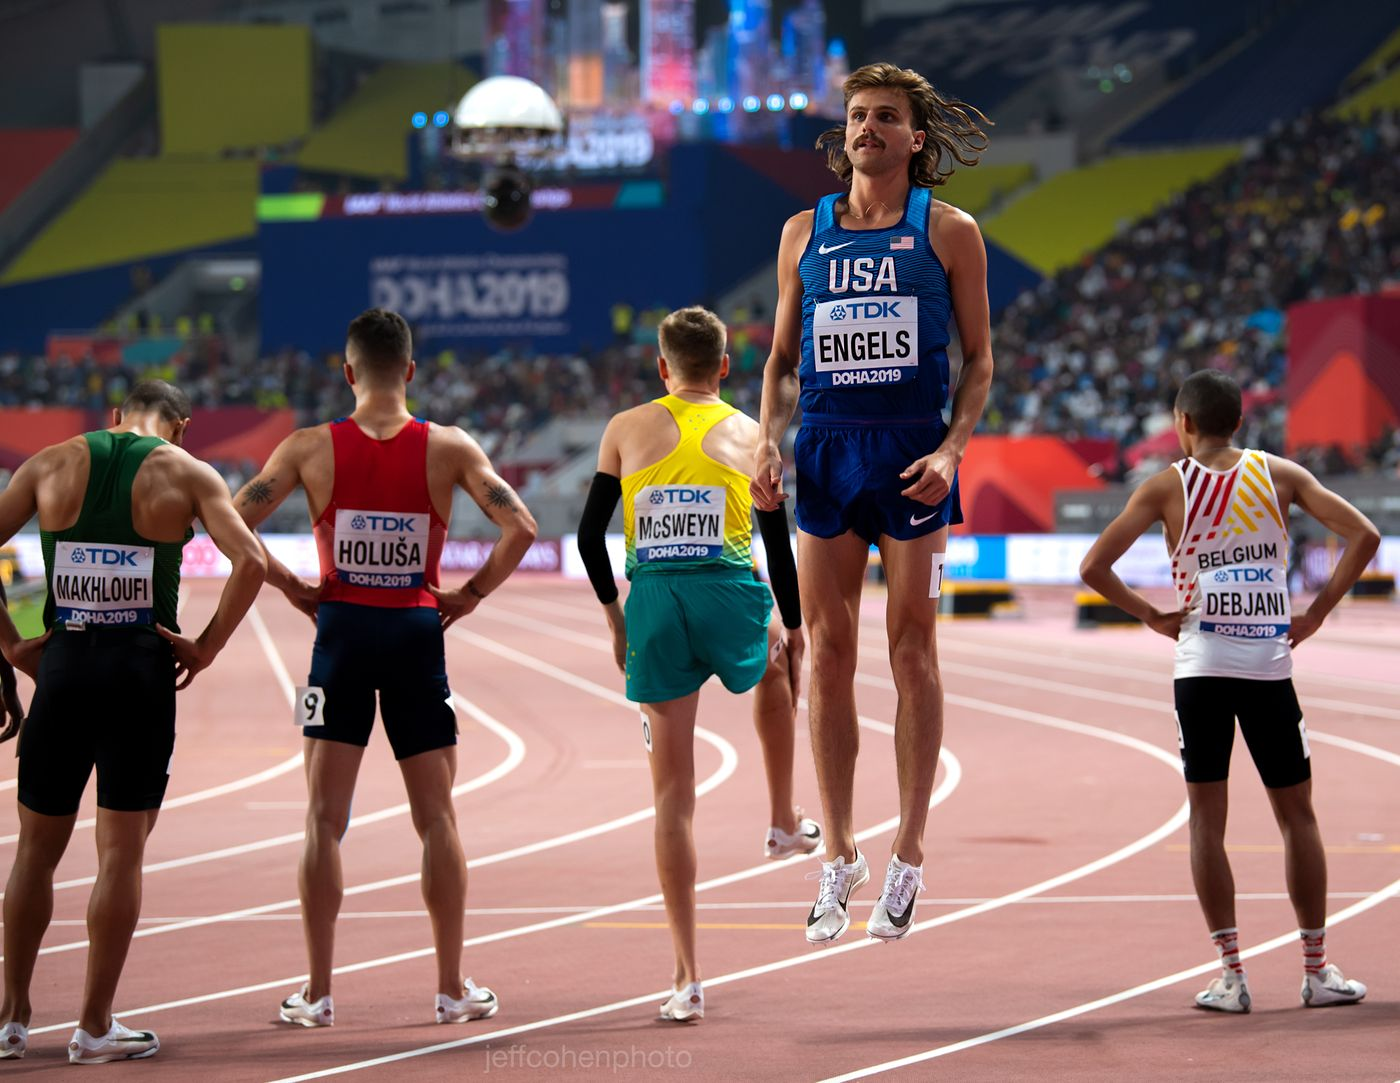 2019-DOHA-WC-day-7-2500--engels-1500m--jeff-cohen-photo--web.jpg